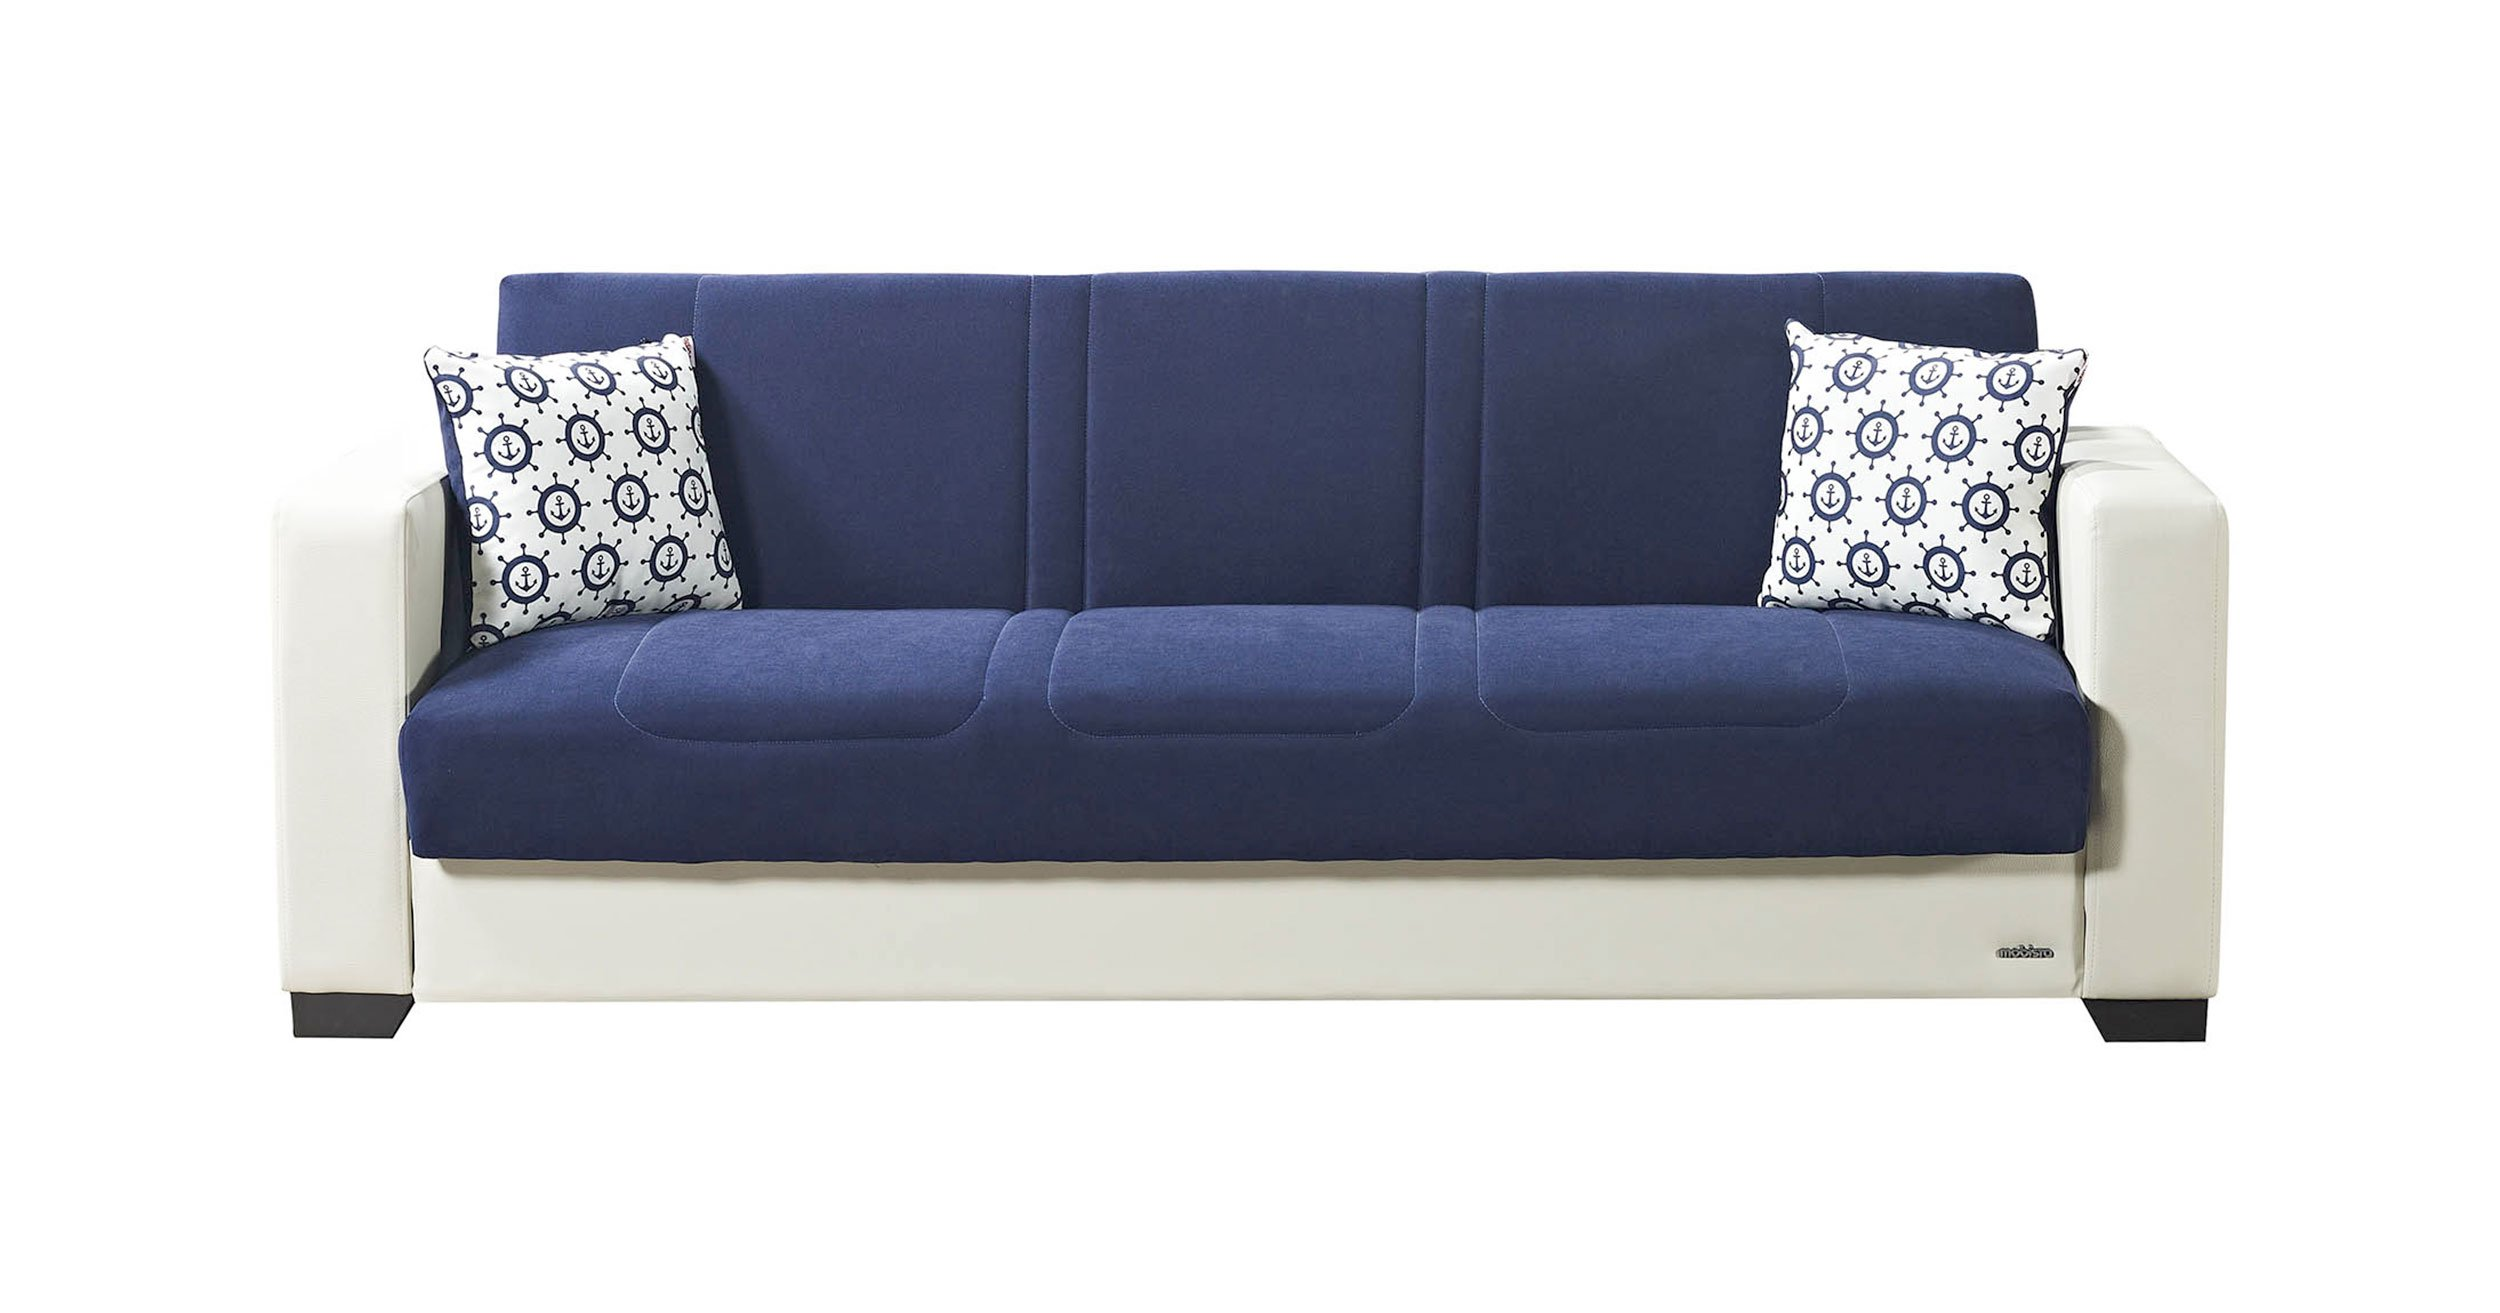 Relaxon Carisma Navy Blue Sofa Bed By Mobista